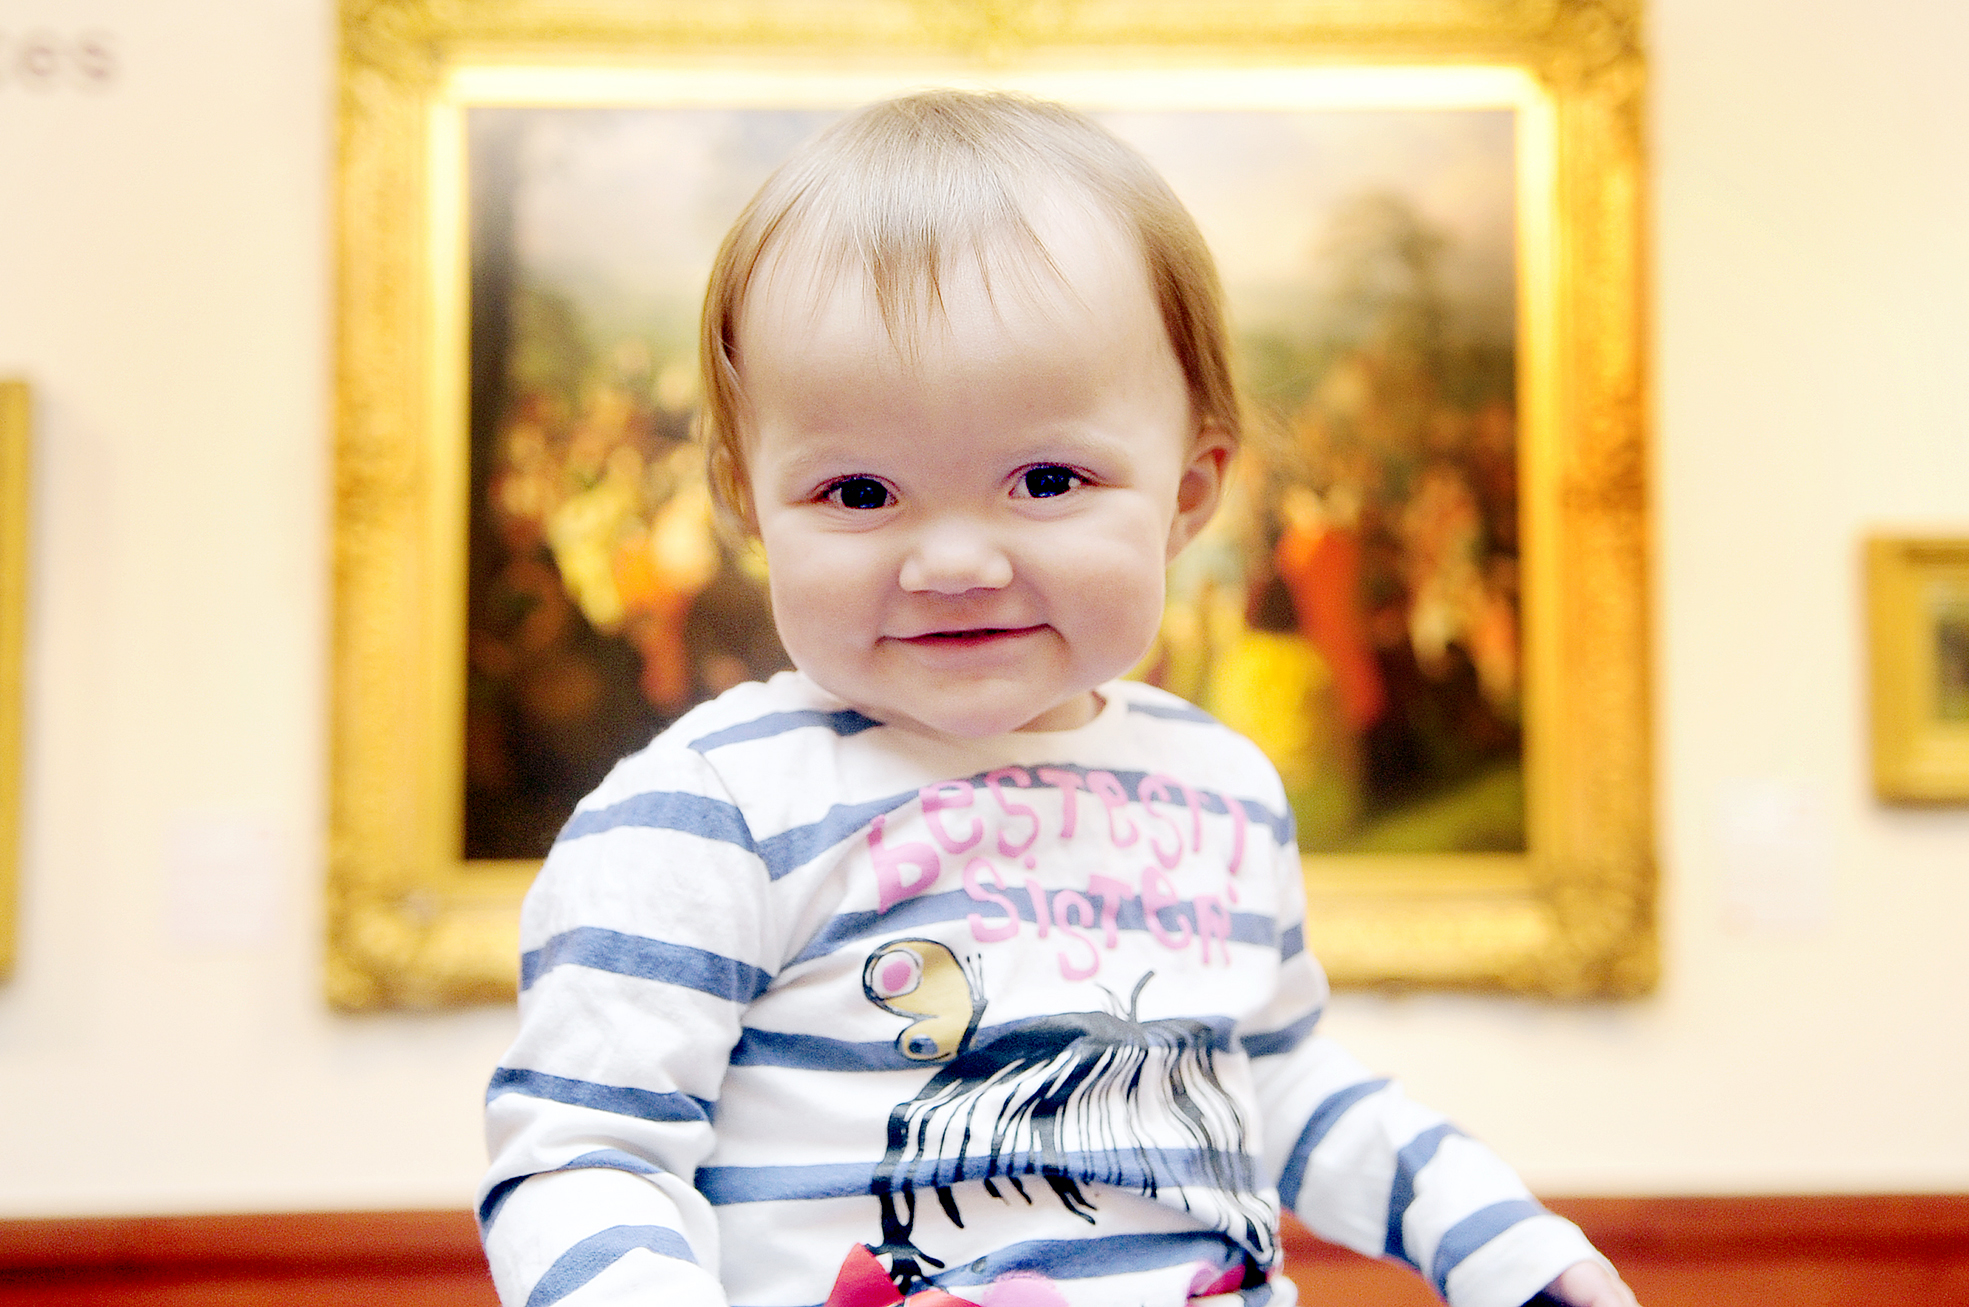 Babies show off their arty side